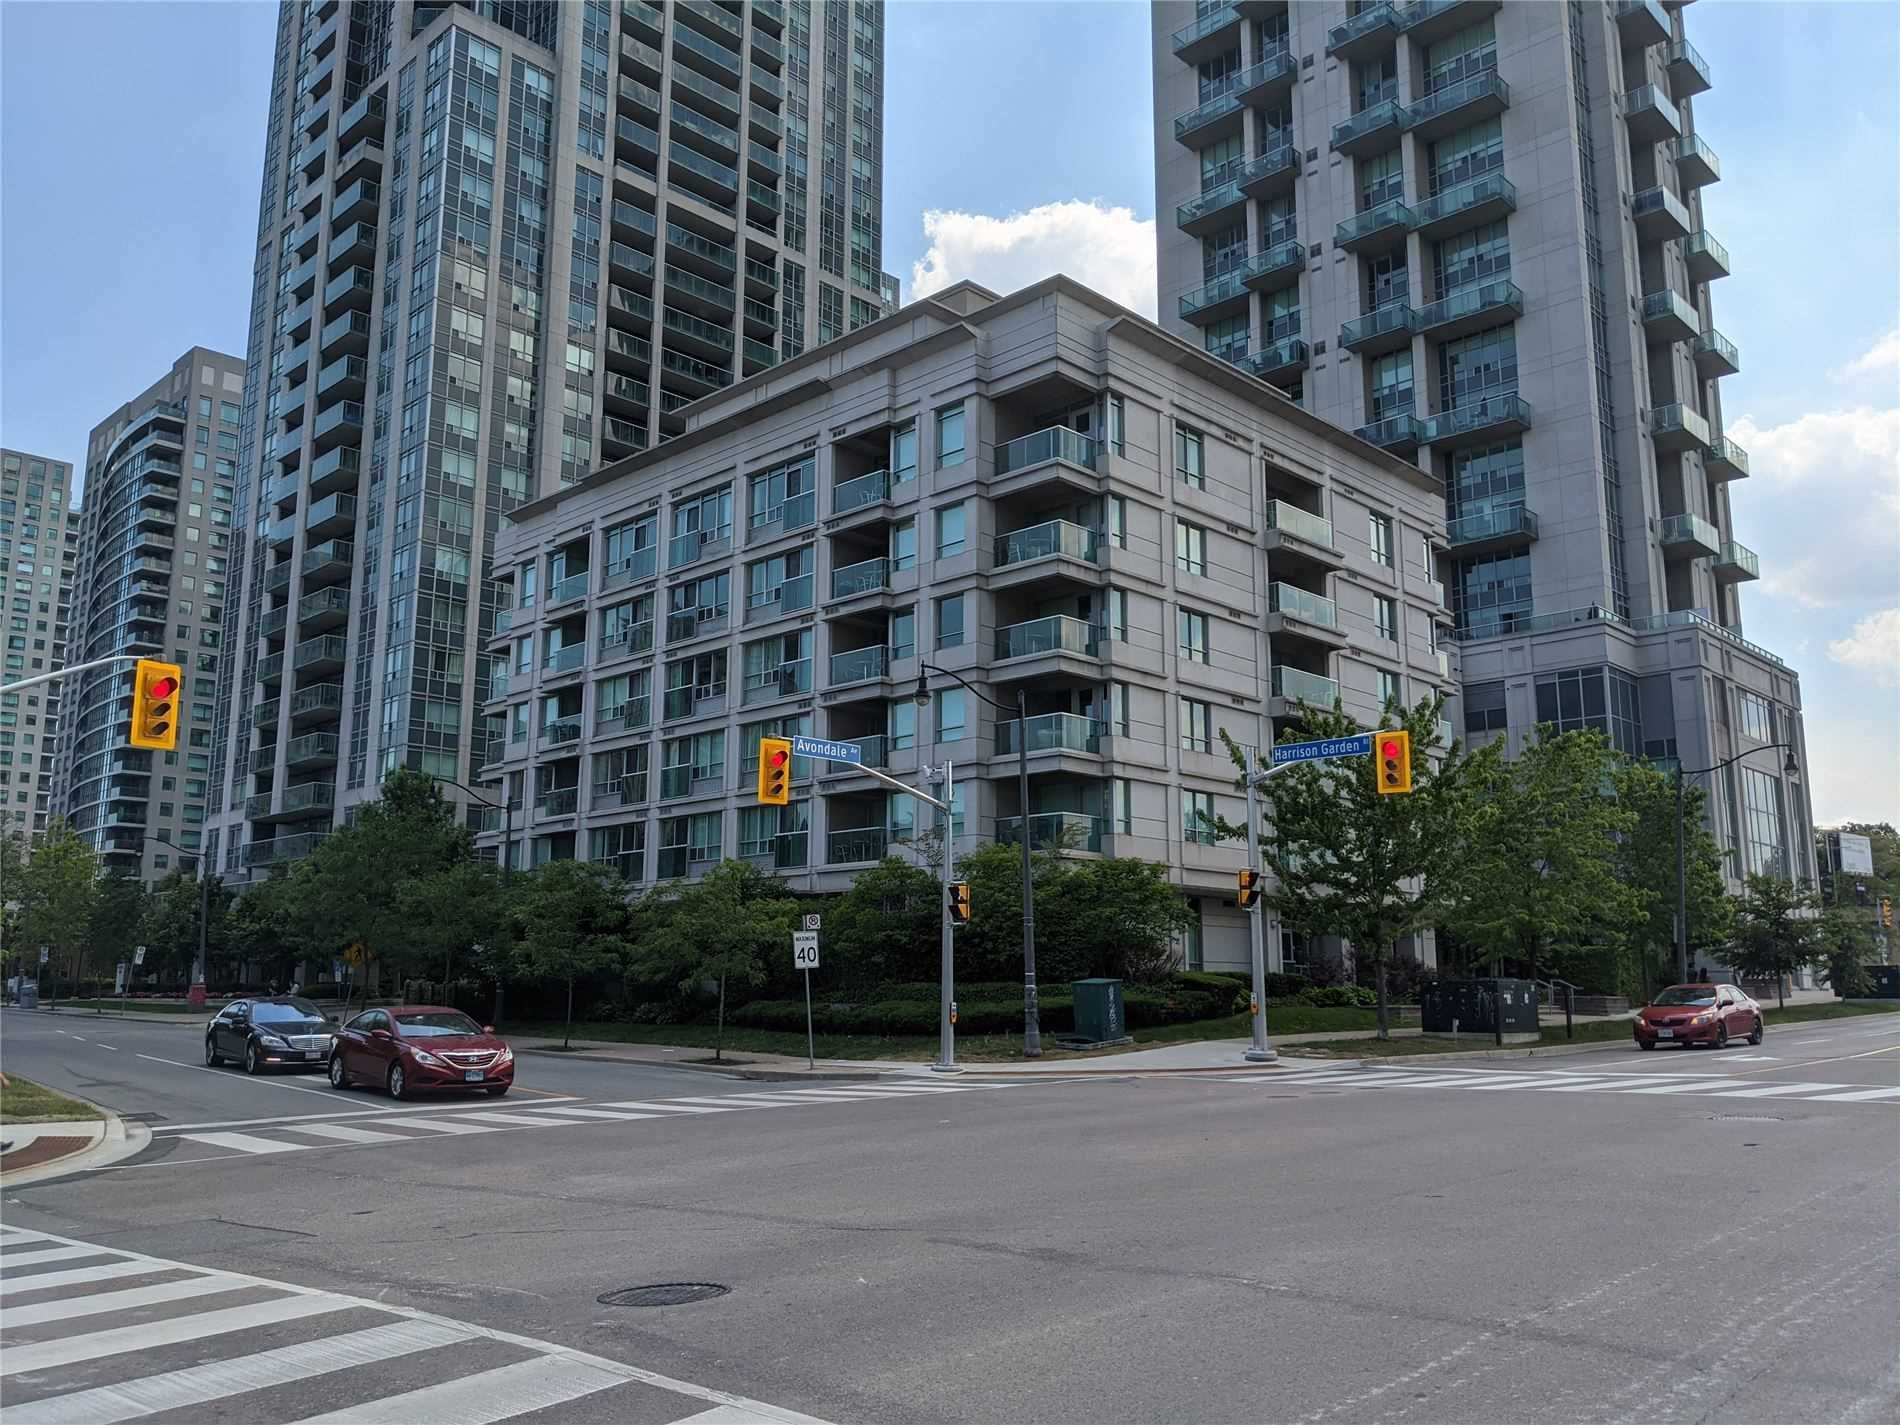 19 Avondale Ave, unit Uph 3 for sale in Toronto - image #2